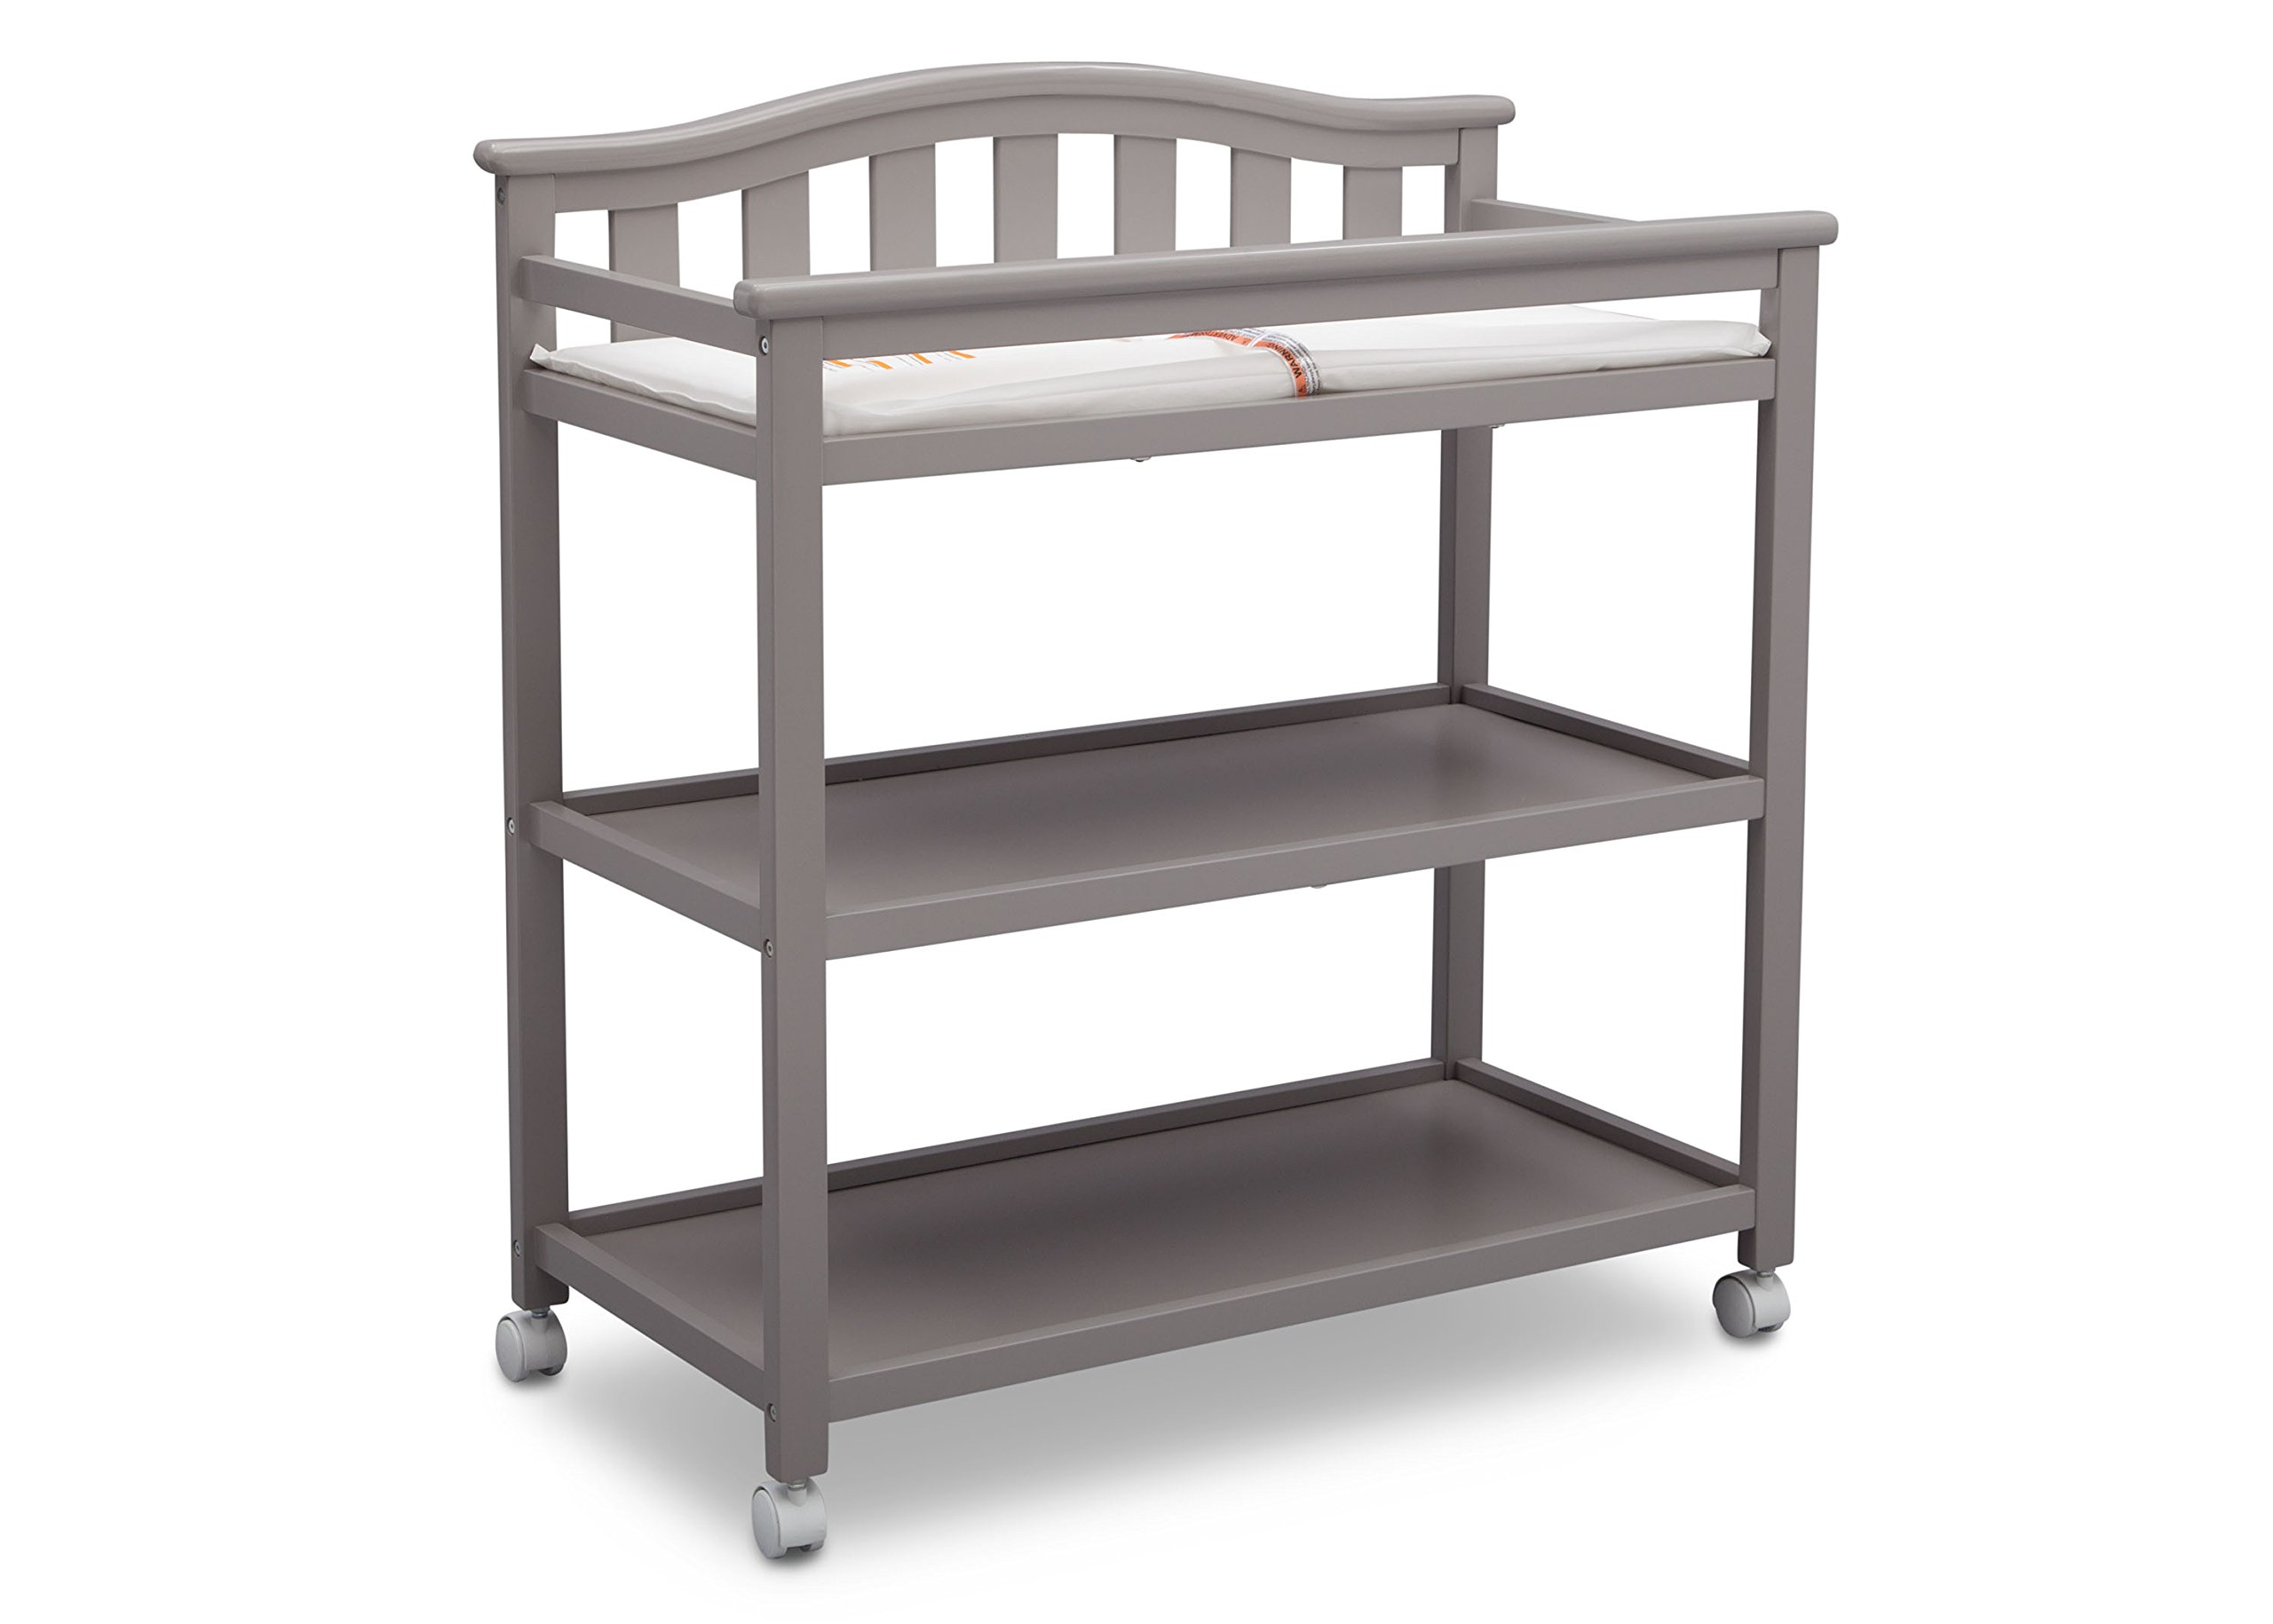 Delta Children Bell Top Changing Table with Casters, Grey by Delta Children (Image #1)